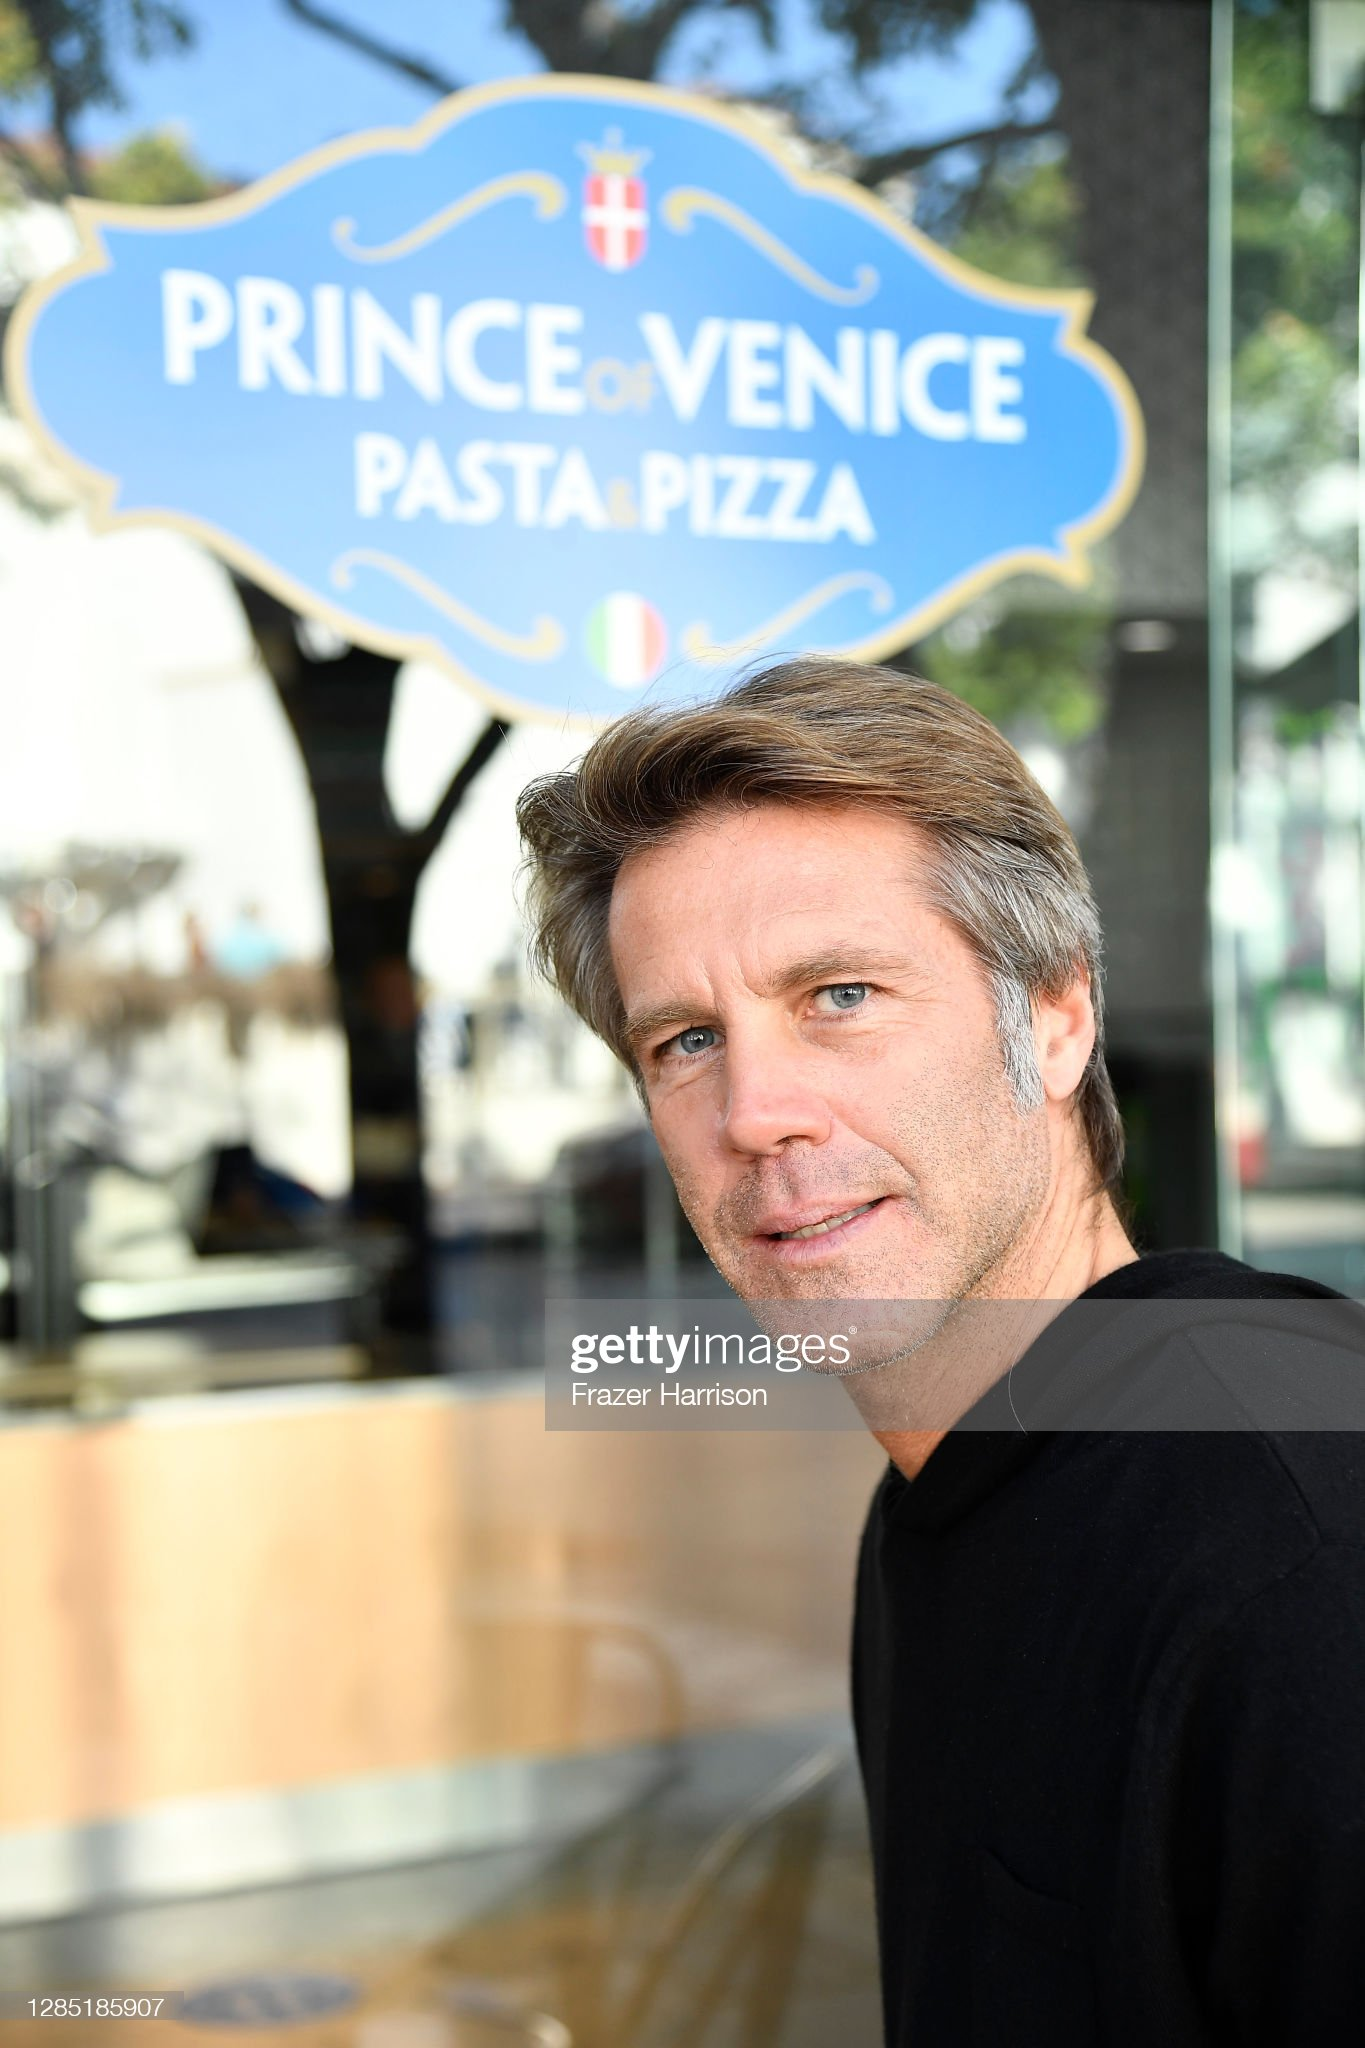 https://media.gettyimages.com/photos/prince-emanuele-filiberto-of-savoy-prince-of-venice-hosts-a-vip-for-picture-id1285185907?s=2048x2048